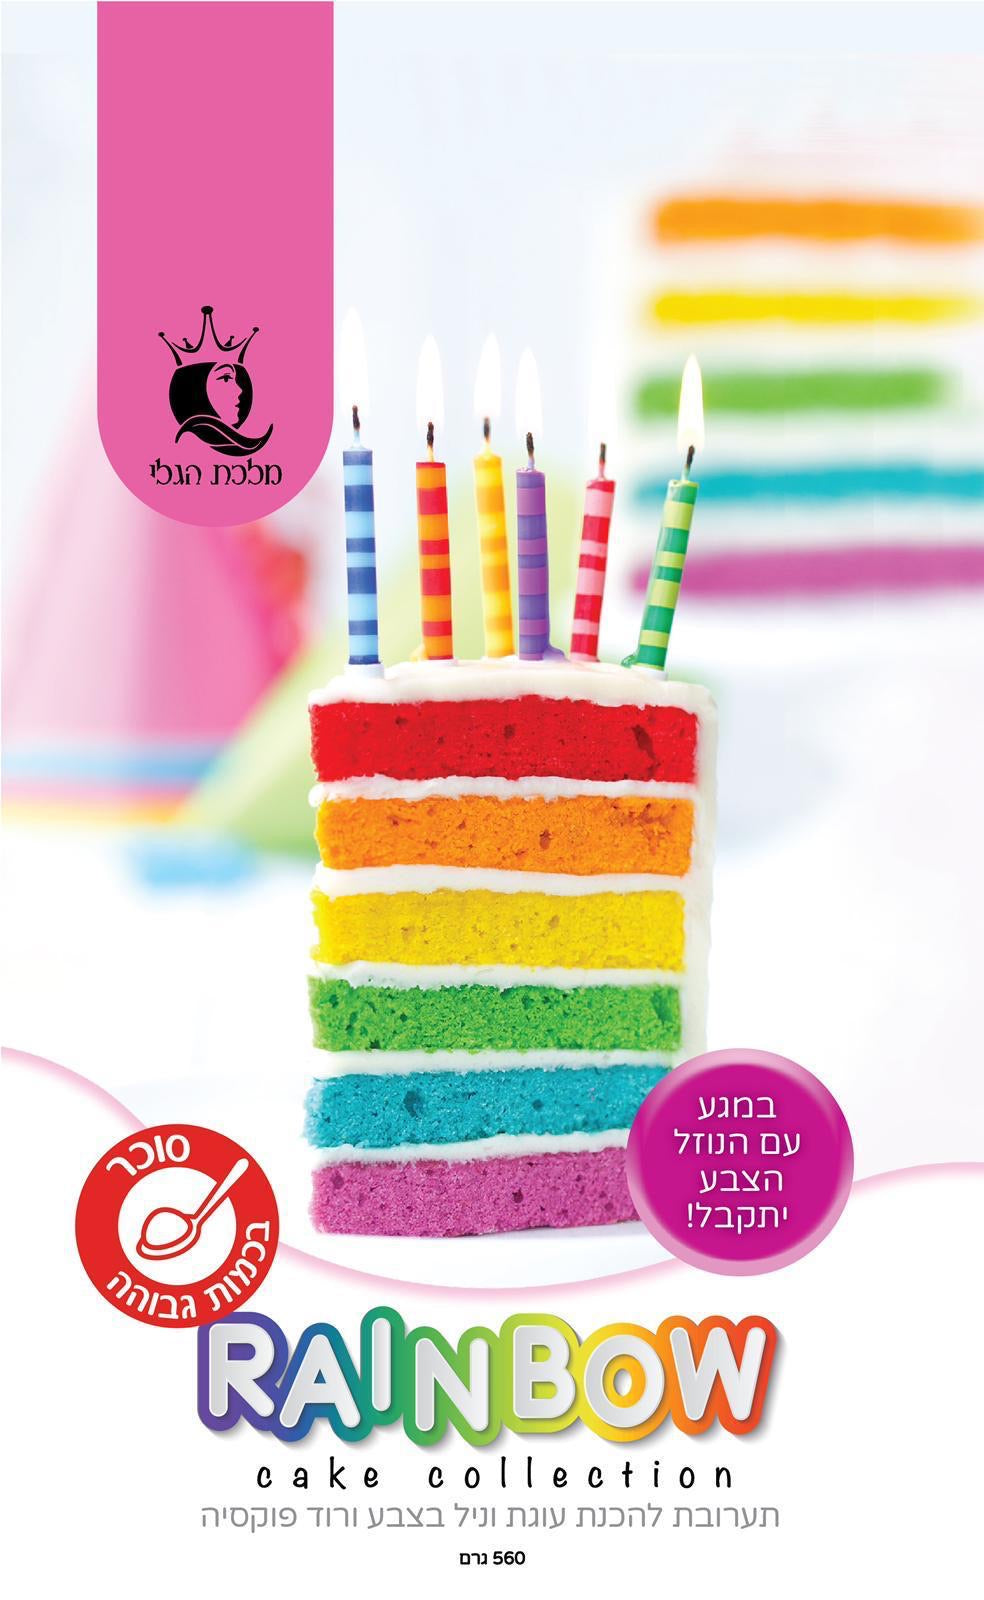 Rainbow Cake collection - ורוד פוקסיה